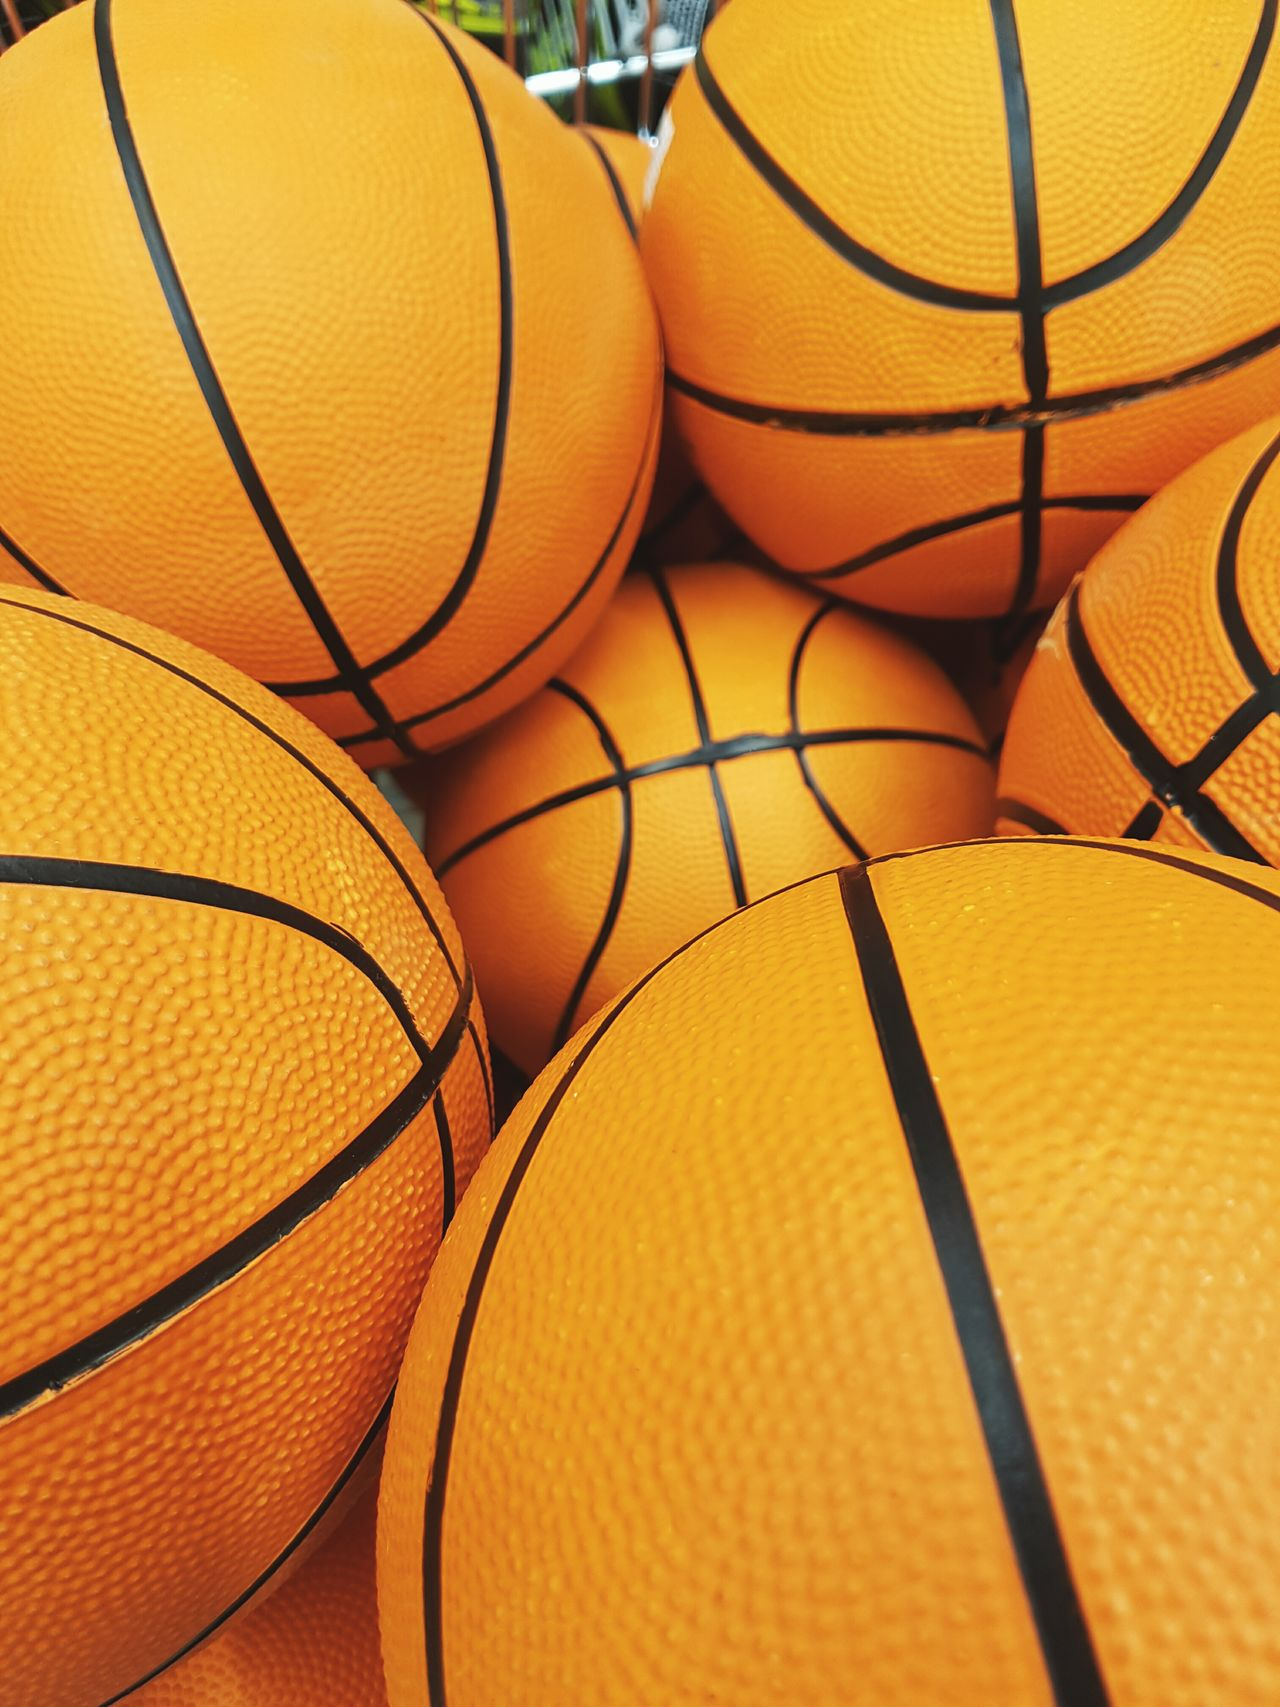 Orange Color Basketball - Sport Backgrounds Sport Close-up Large Group Of Objects Outdoors Court Sport Sports Training Sports Photography Balls Basketball Basketball Game Sports Day  Orange Basketball Court Playground